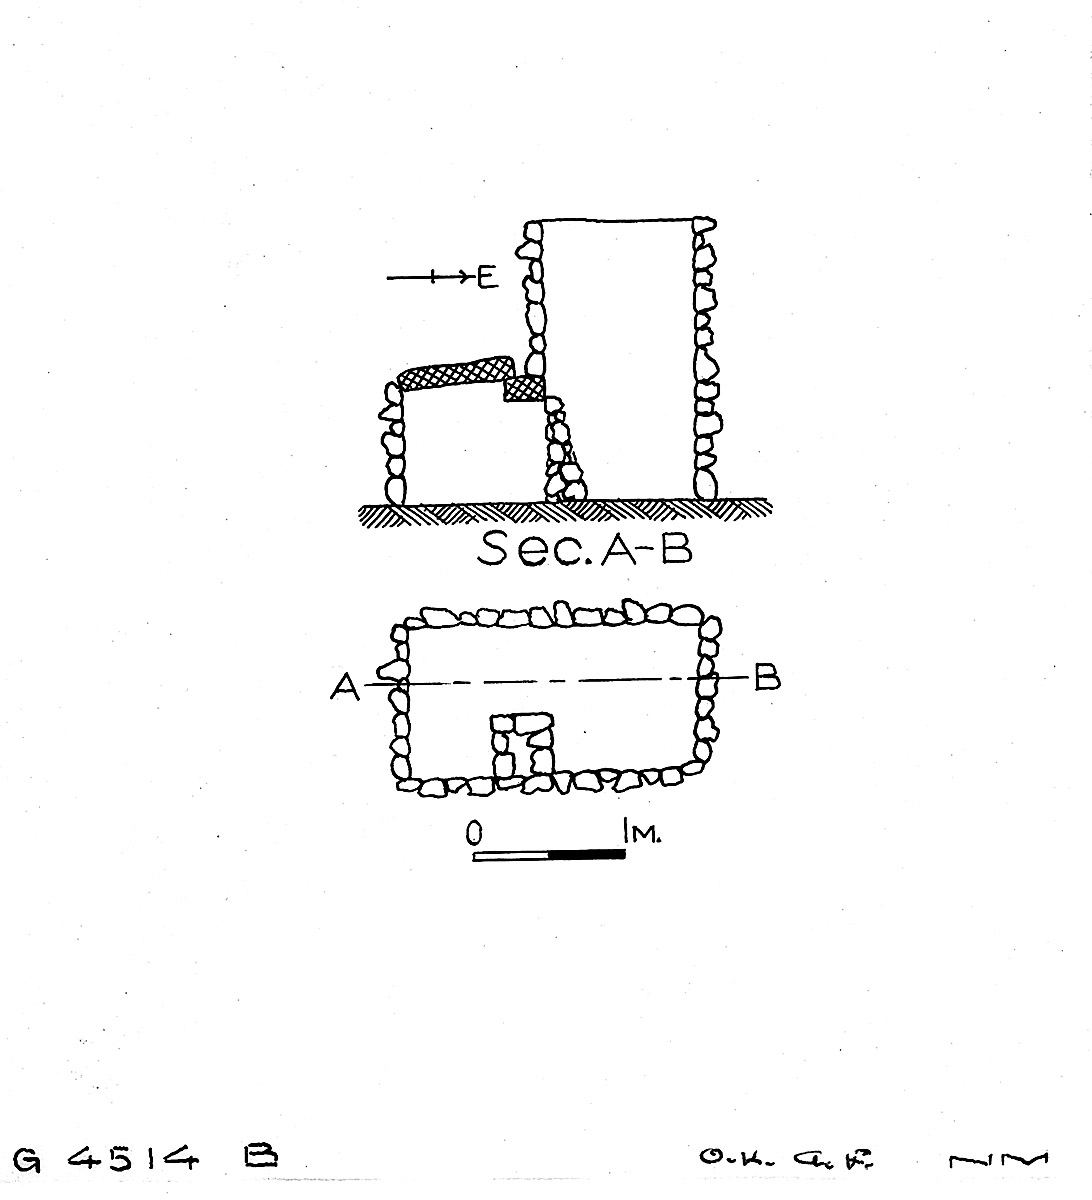 Maps and plans: G 4514, Shaft B